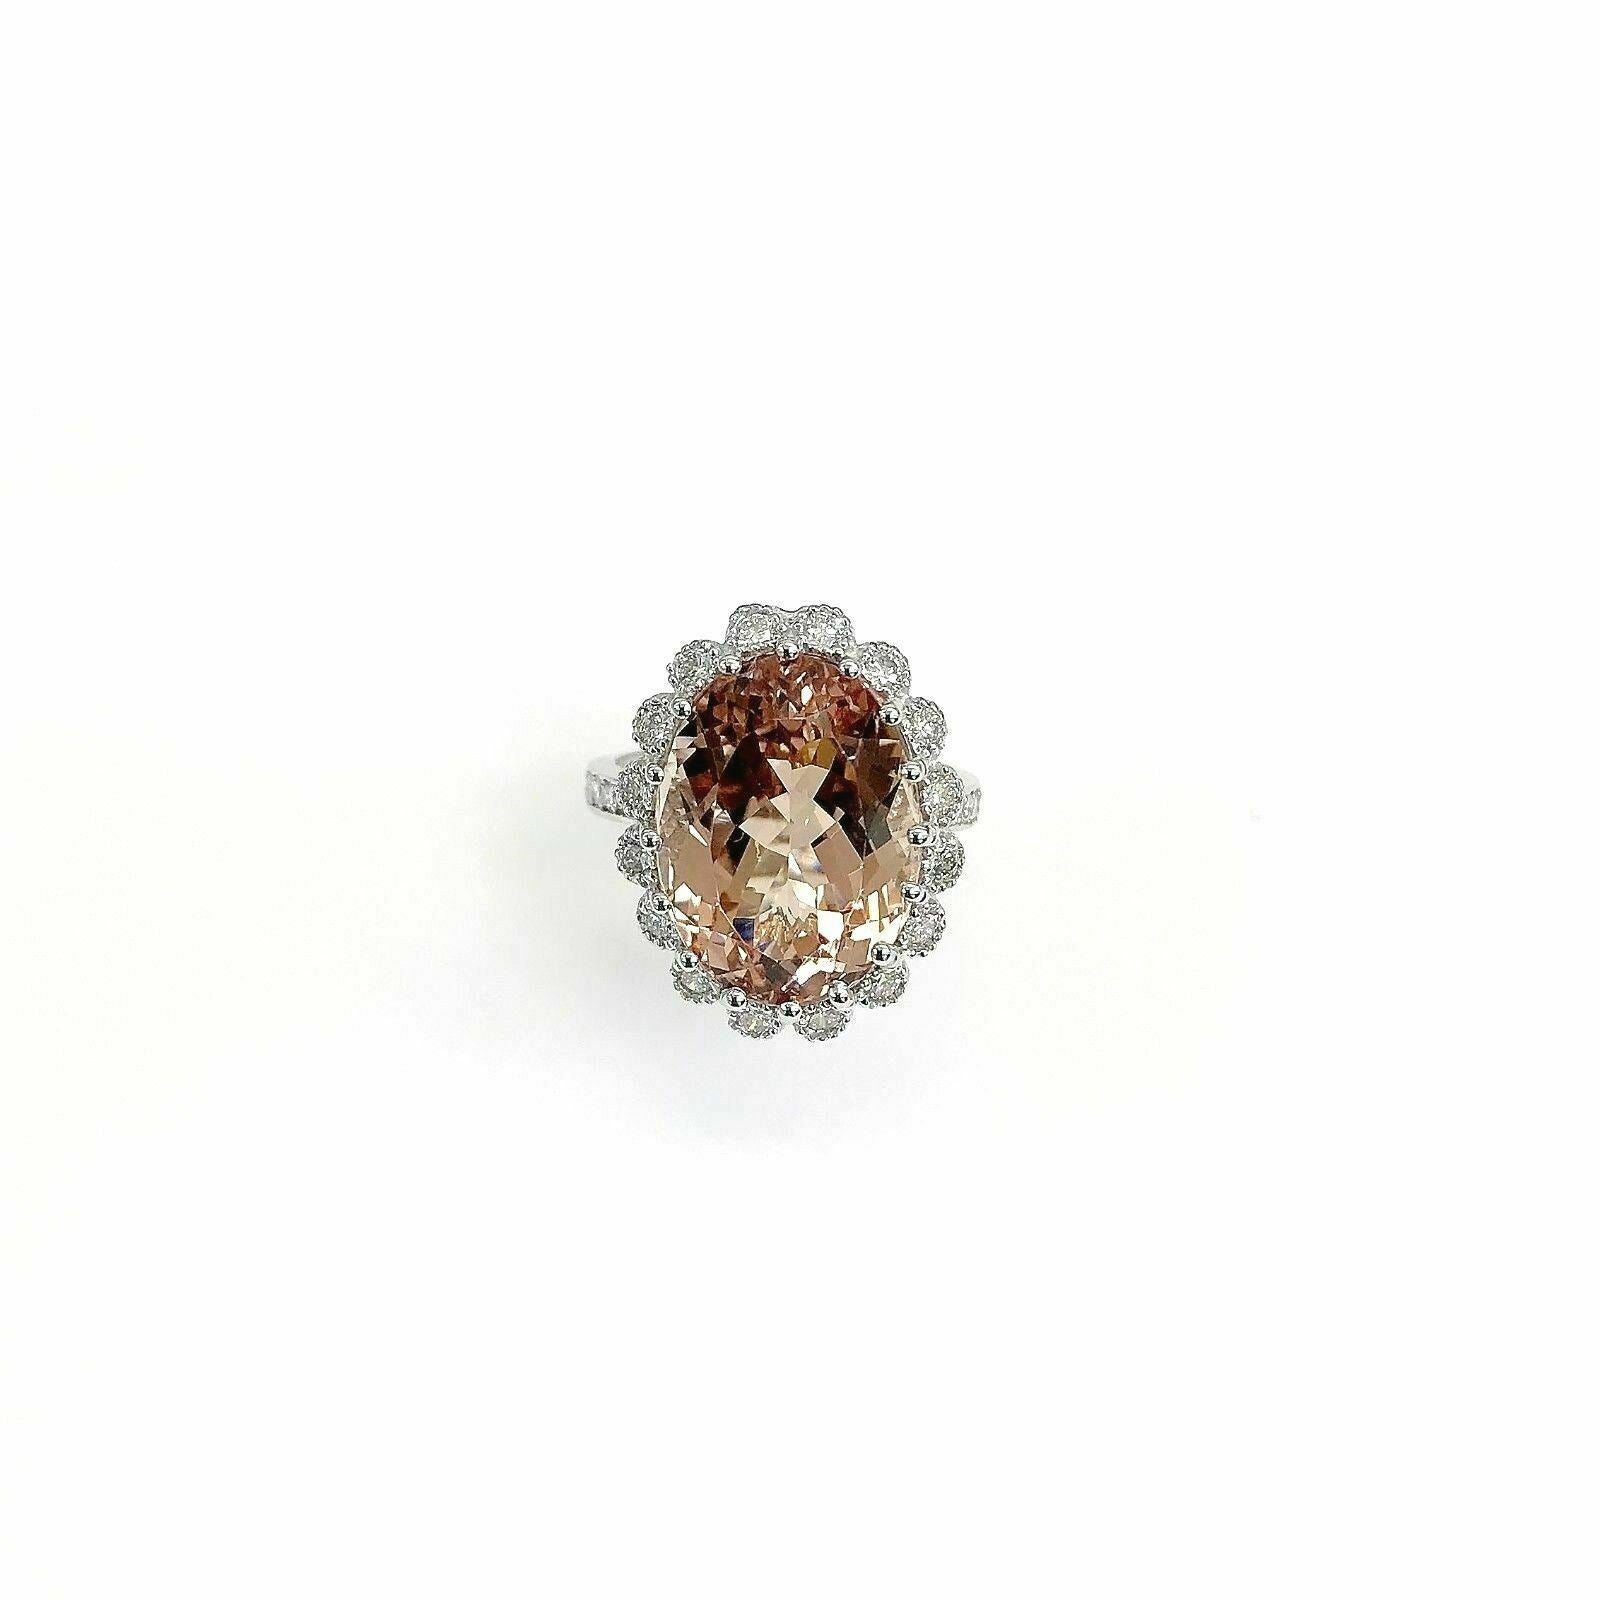 12.29 Carats Diamond and Oval Morganite Halo Cocktail Ring 14K White Gold New